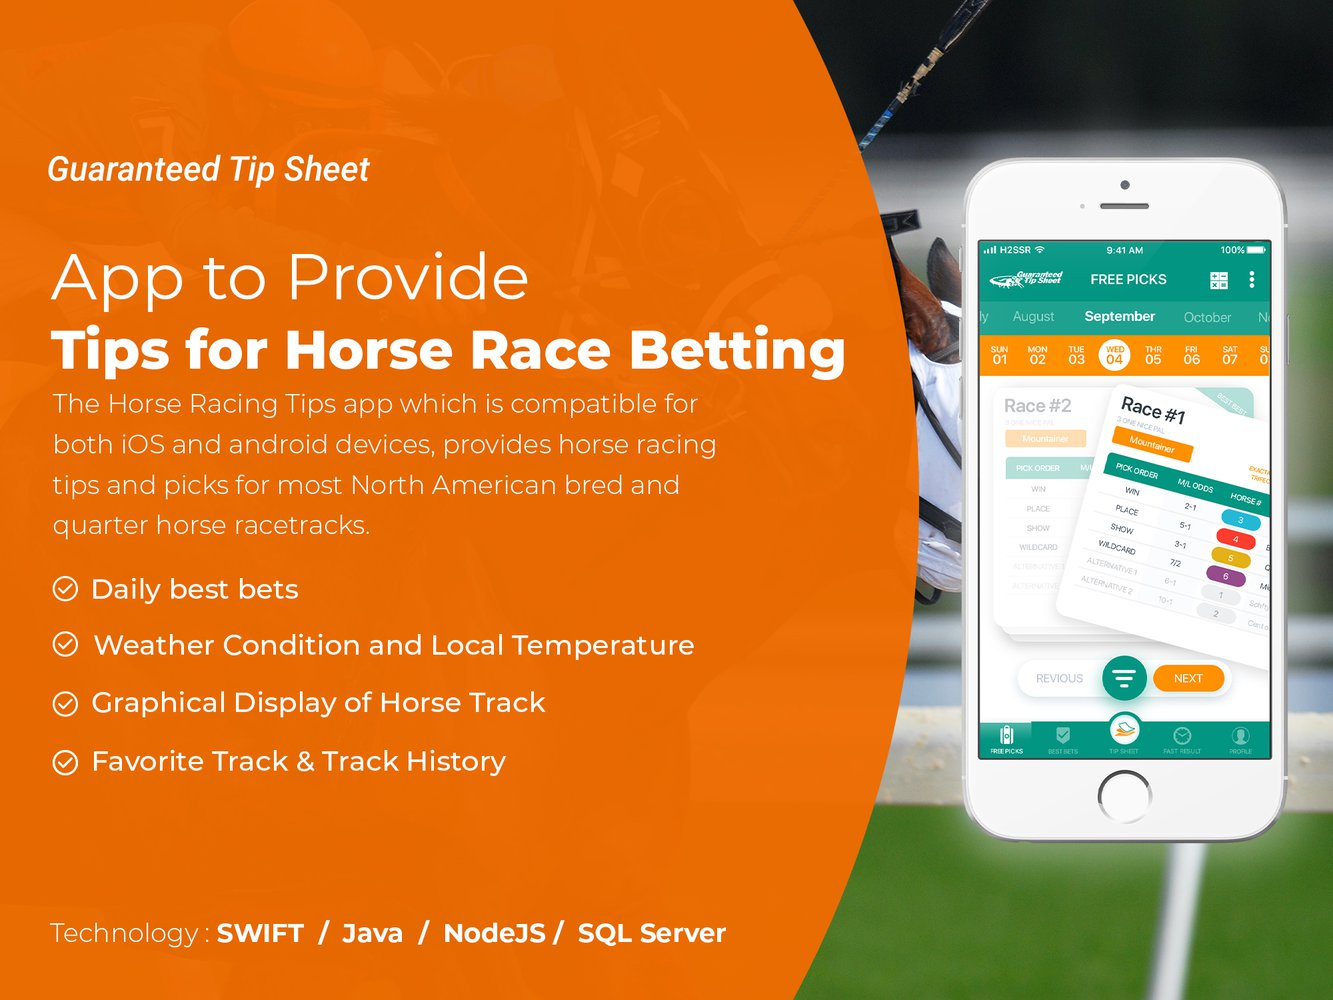 App to Provide Tips for Horse Race Betting